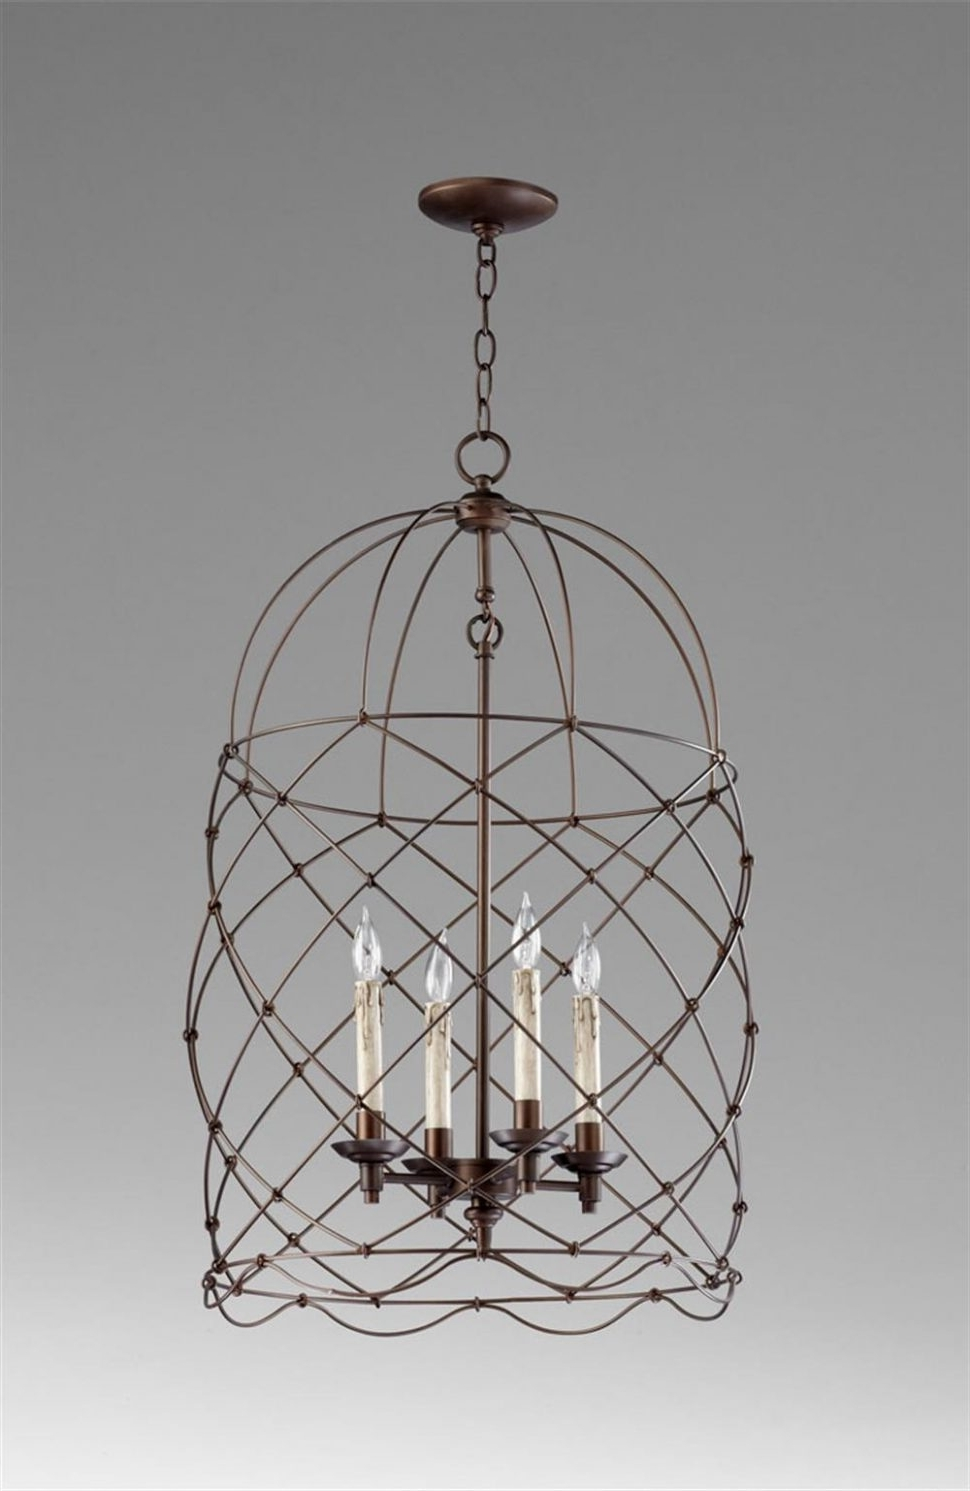 Cage Chandeliers Pertaining To Widely Used Chandeliers Design : Magnificent Cage Chandelier Lighting Currey (View 12 of 15)